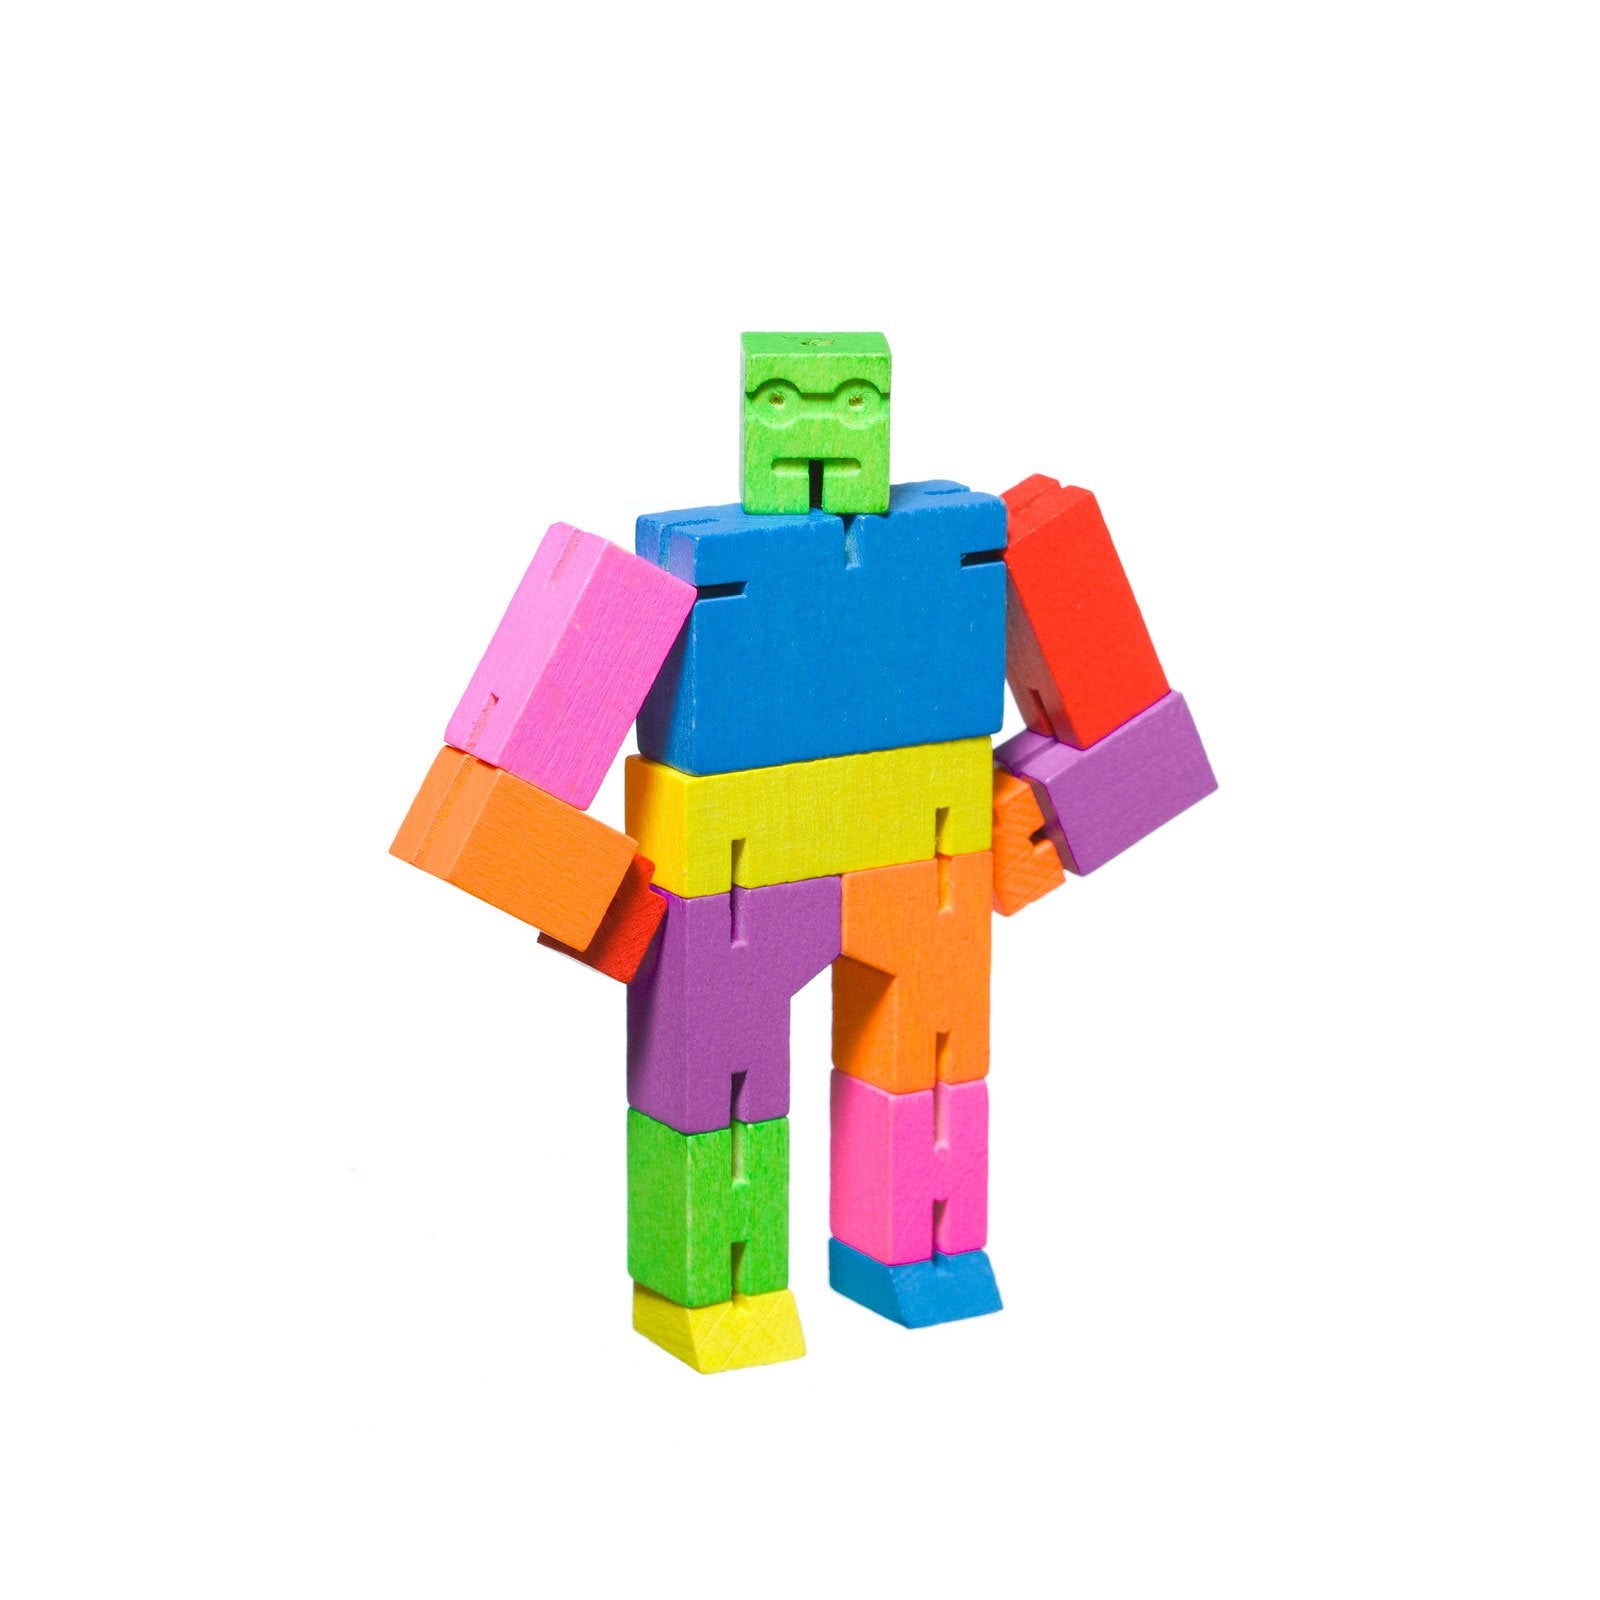 Cubebots David Weeks Studio Activity Toys Micro / Multi at Little Earth Nest Eco Shop